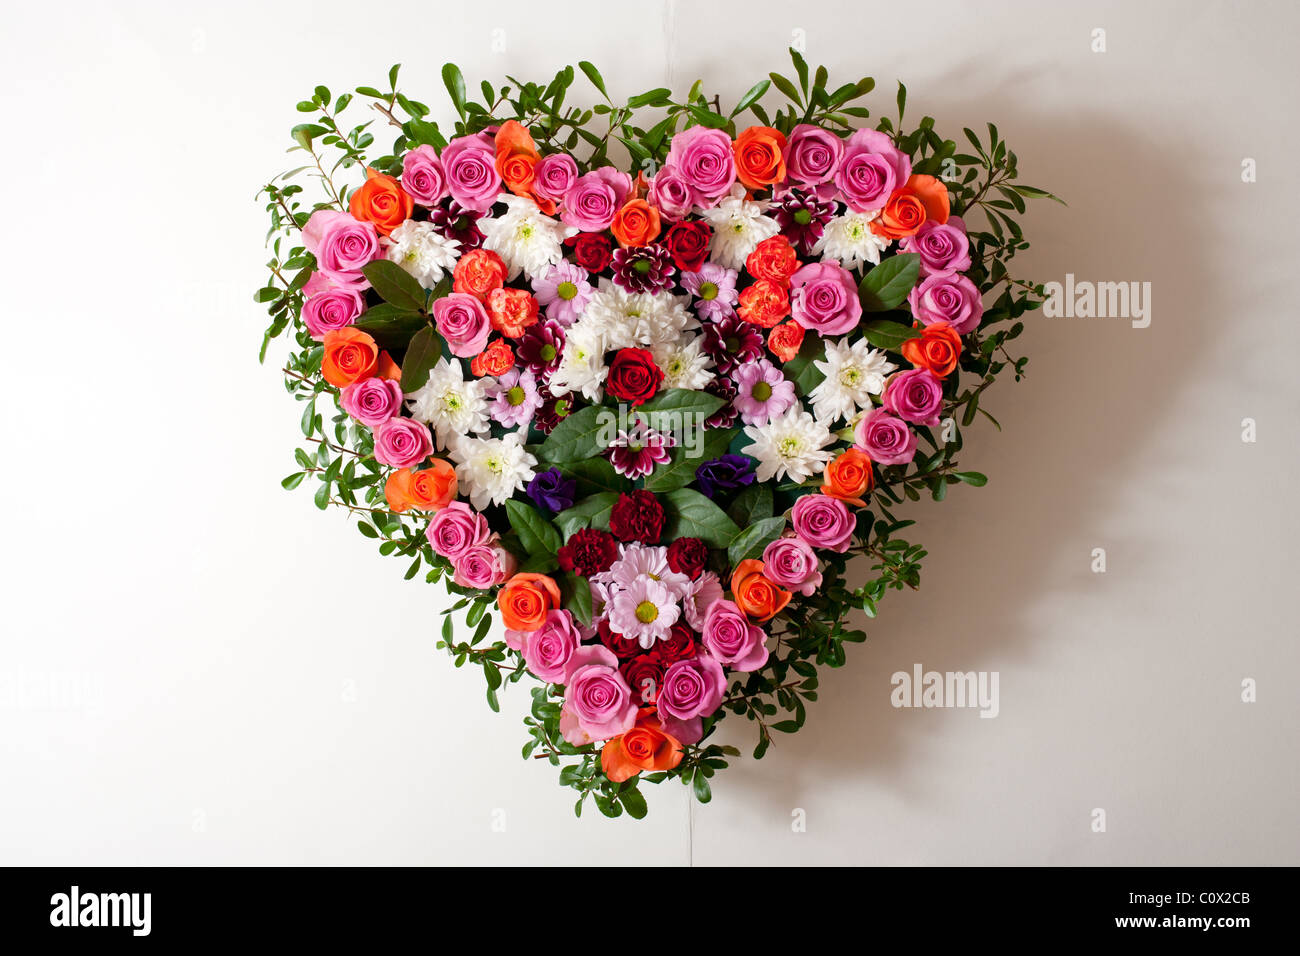 Heart shaped funeral flowers stock photo 34993403 alamy heart shaped funeral flowers izmirmasajfo